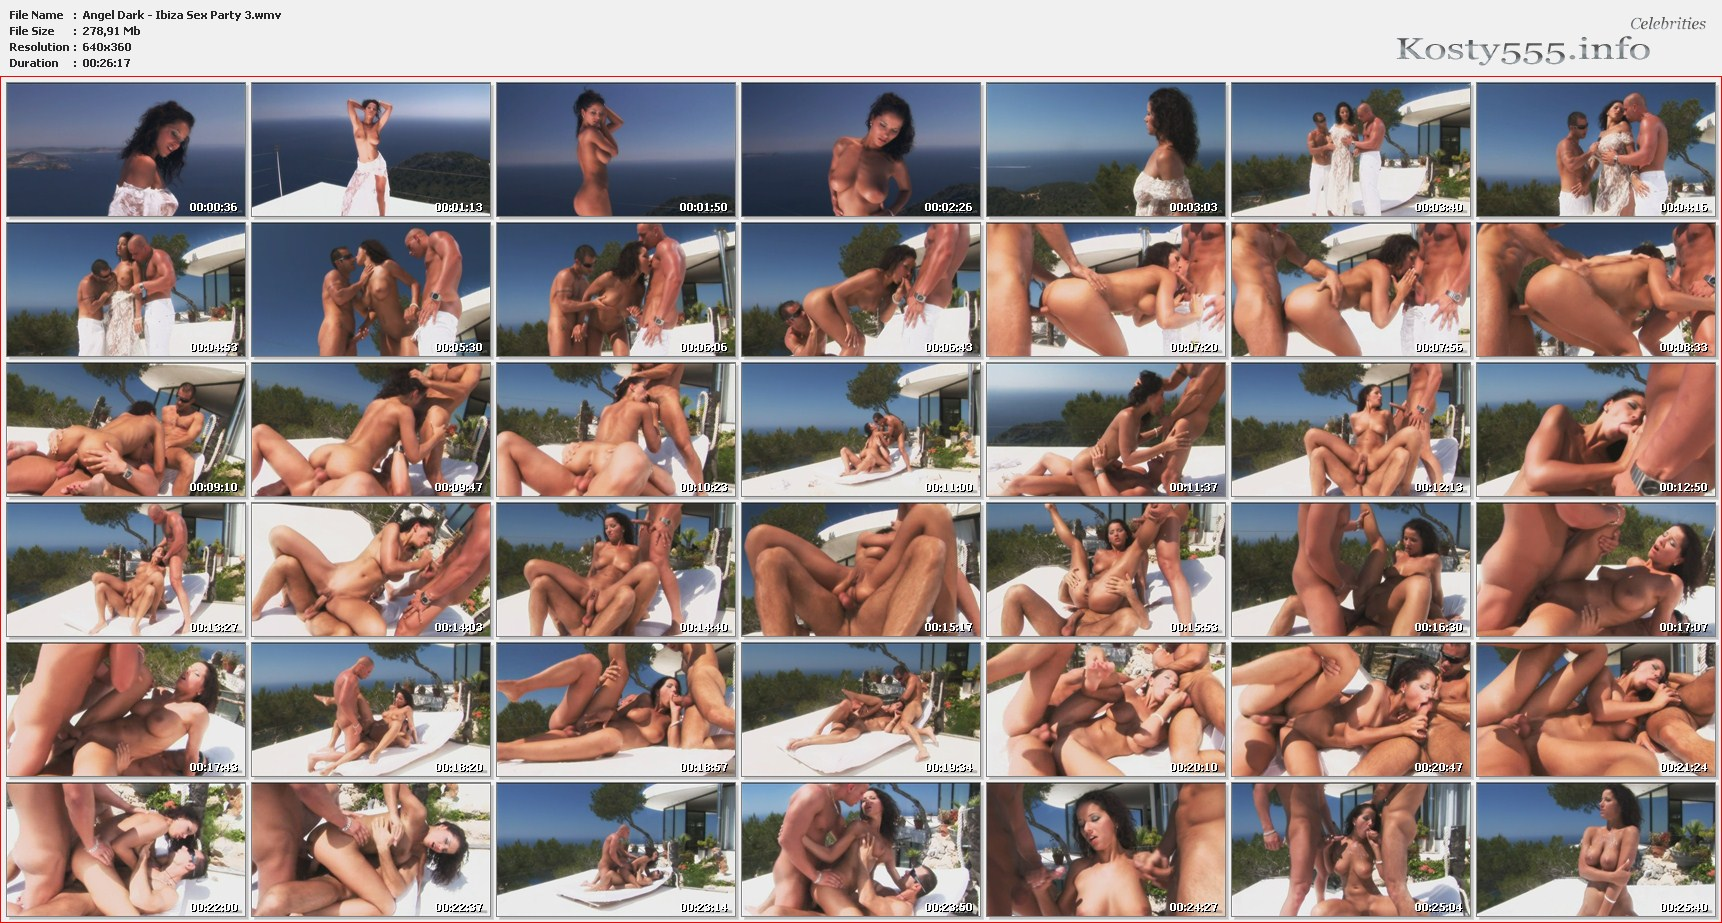 Angel Dark   Ibiza Sex Party 3.wmv Very Young Teen Videos